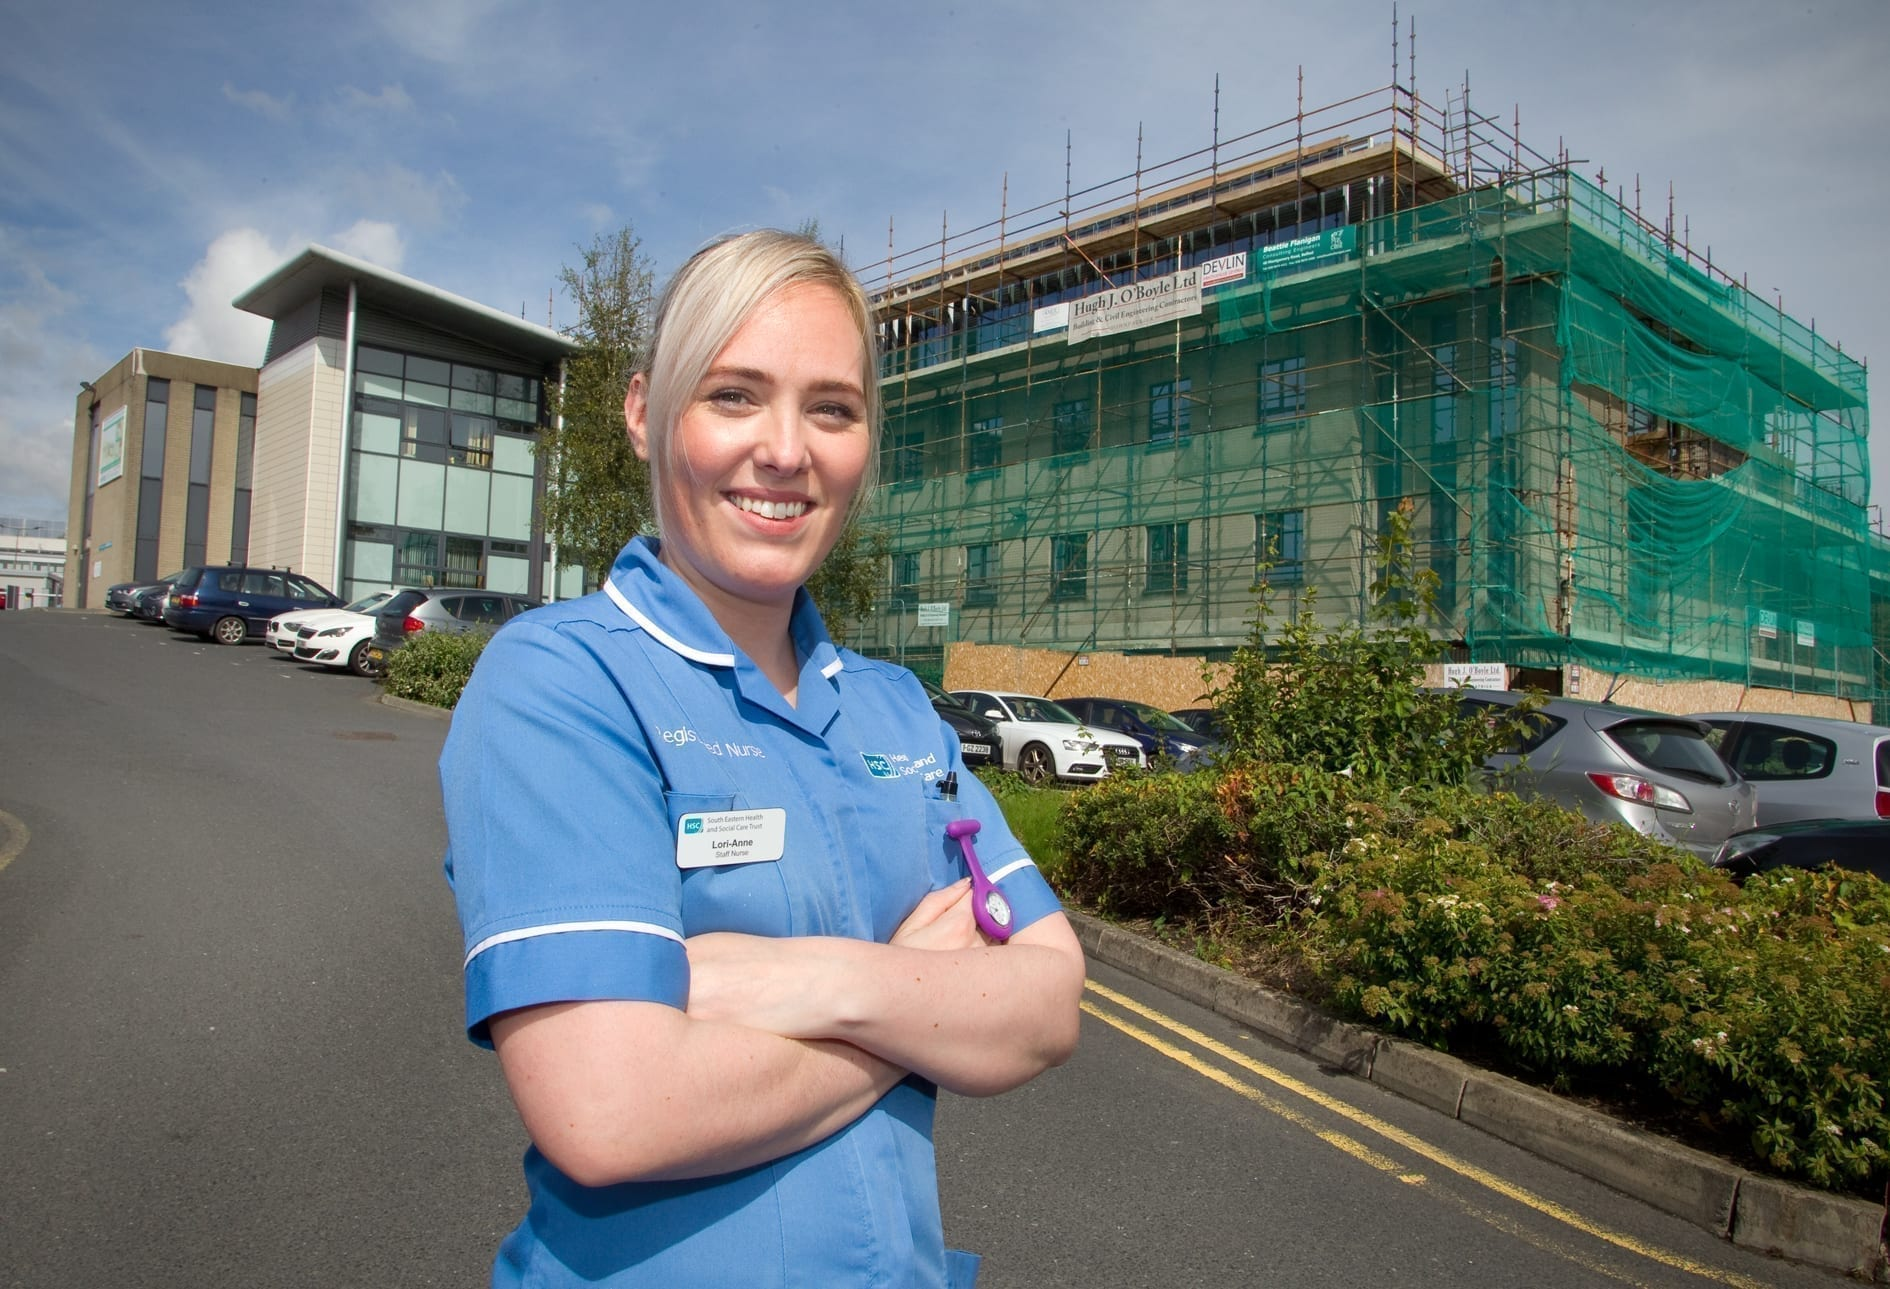 Work resumes on £3m cancer centre